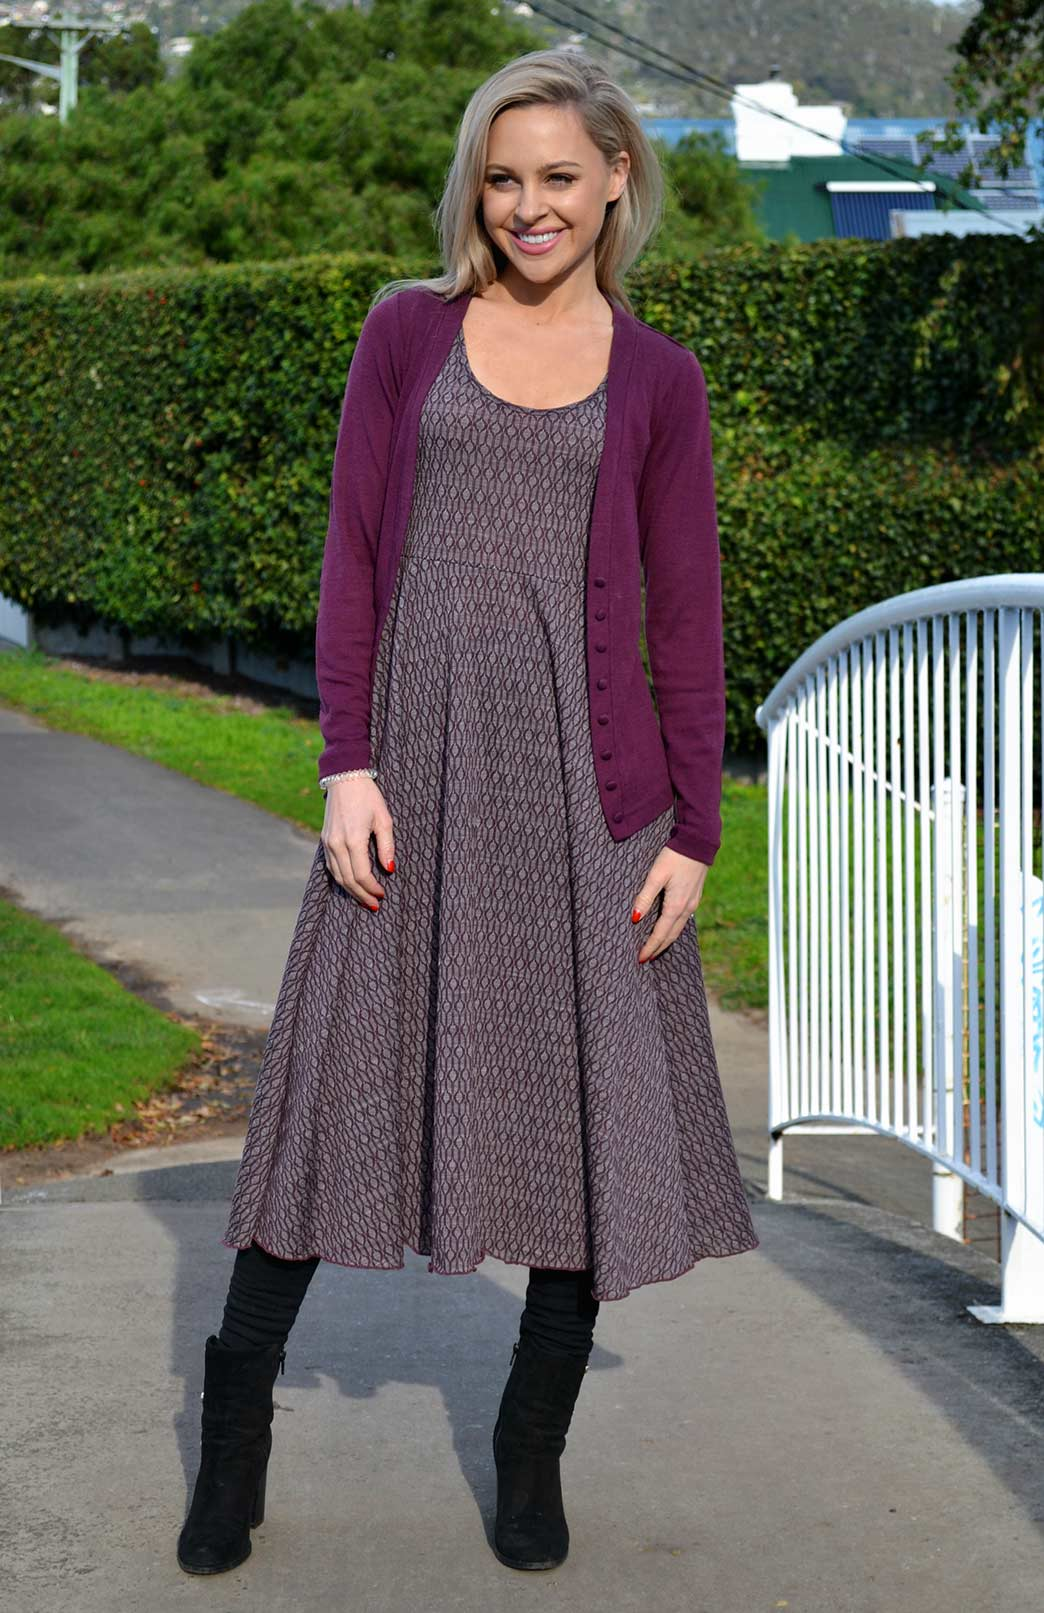 Fan Dress - Patterned Fabric - Women's Raisin Keyhole Patterned Woollen Dress with empire waistline - Smitten Merino Tasmania Australia